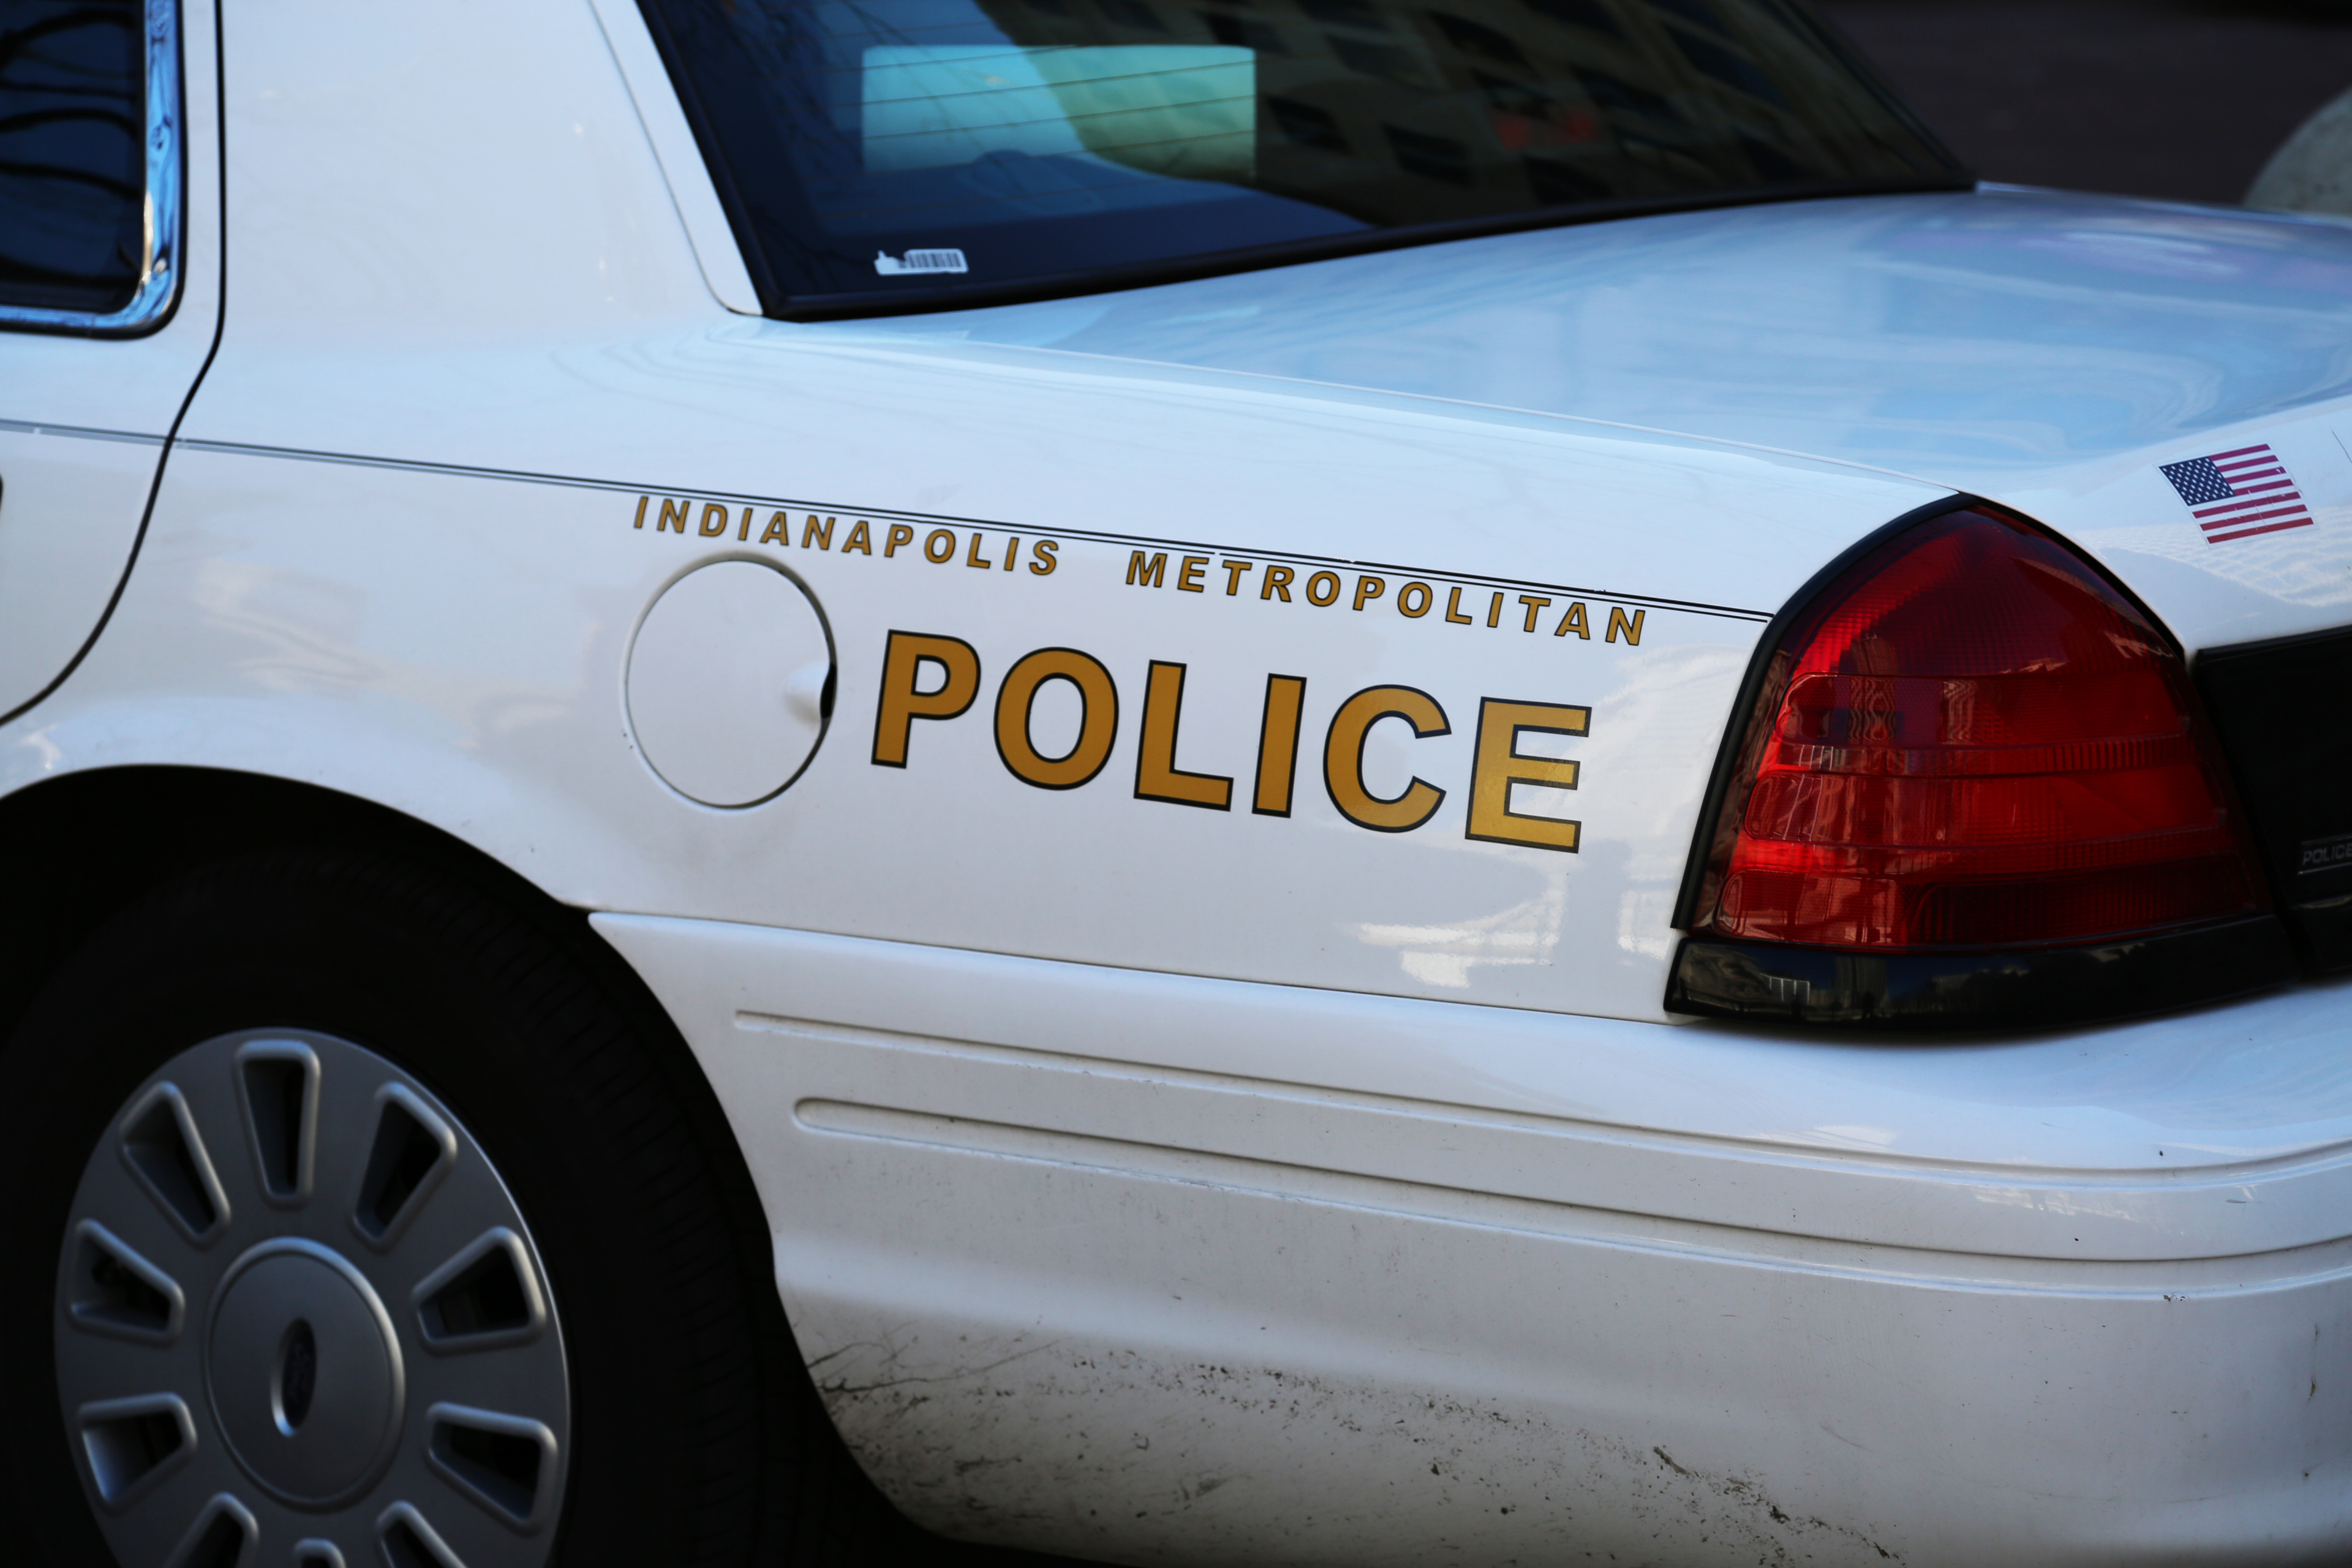 Police Investigating Deaths Of 3 People In Indianapolis